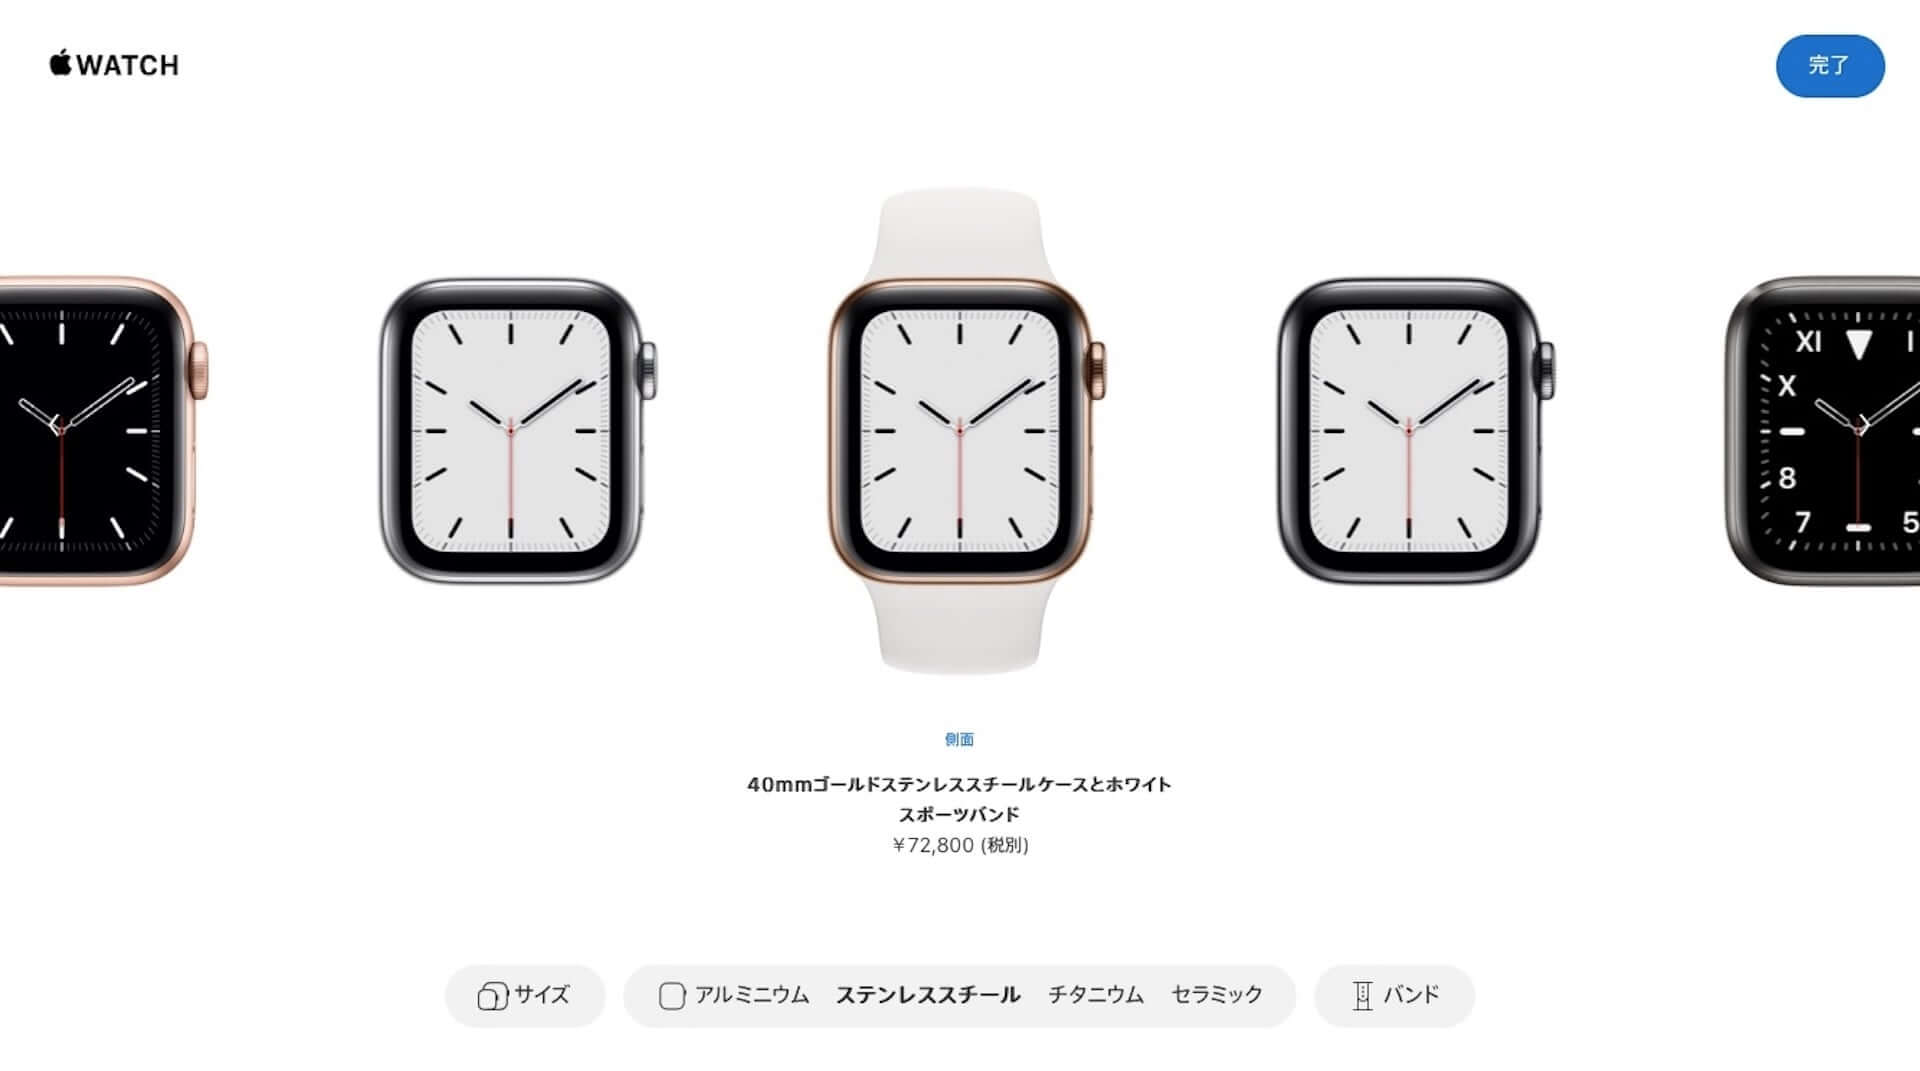 あなた好みのApple Watchを探そう!Apple Watch Studioが開設 tech190911_applewatch_studio_4-1920x1071